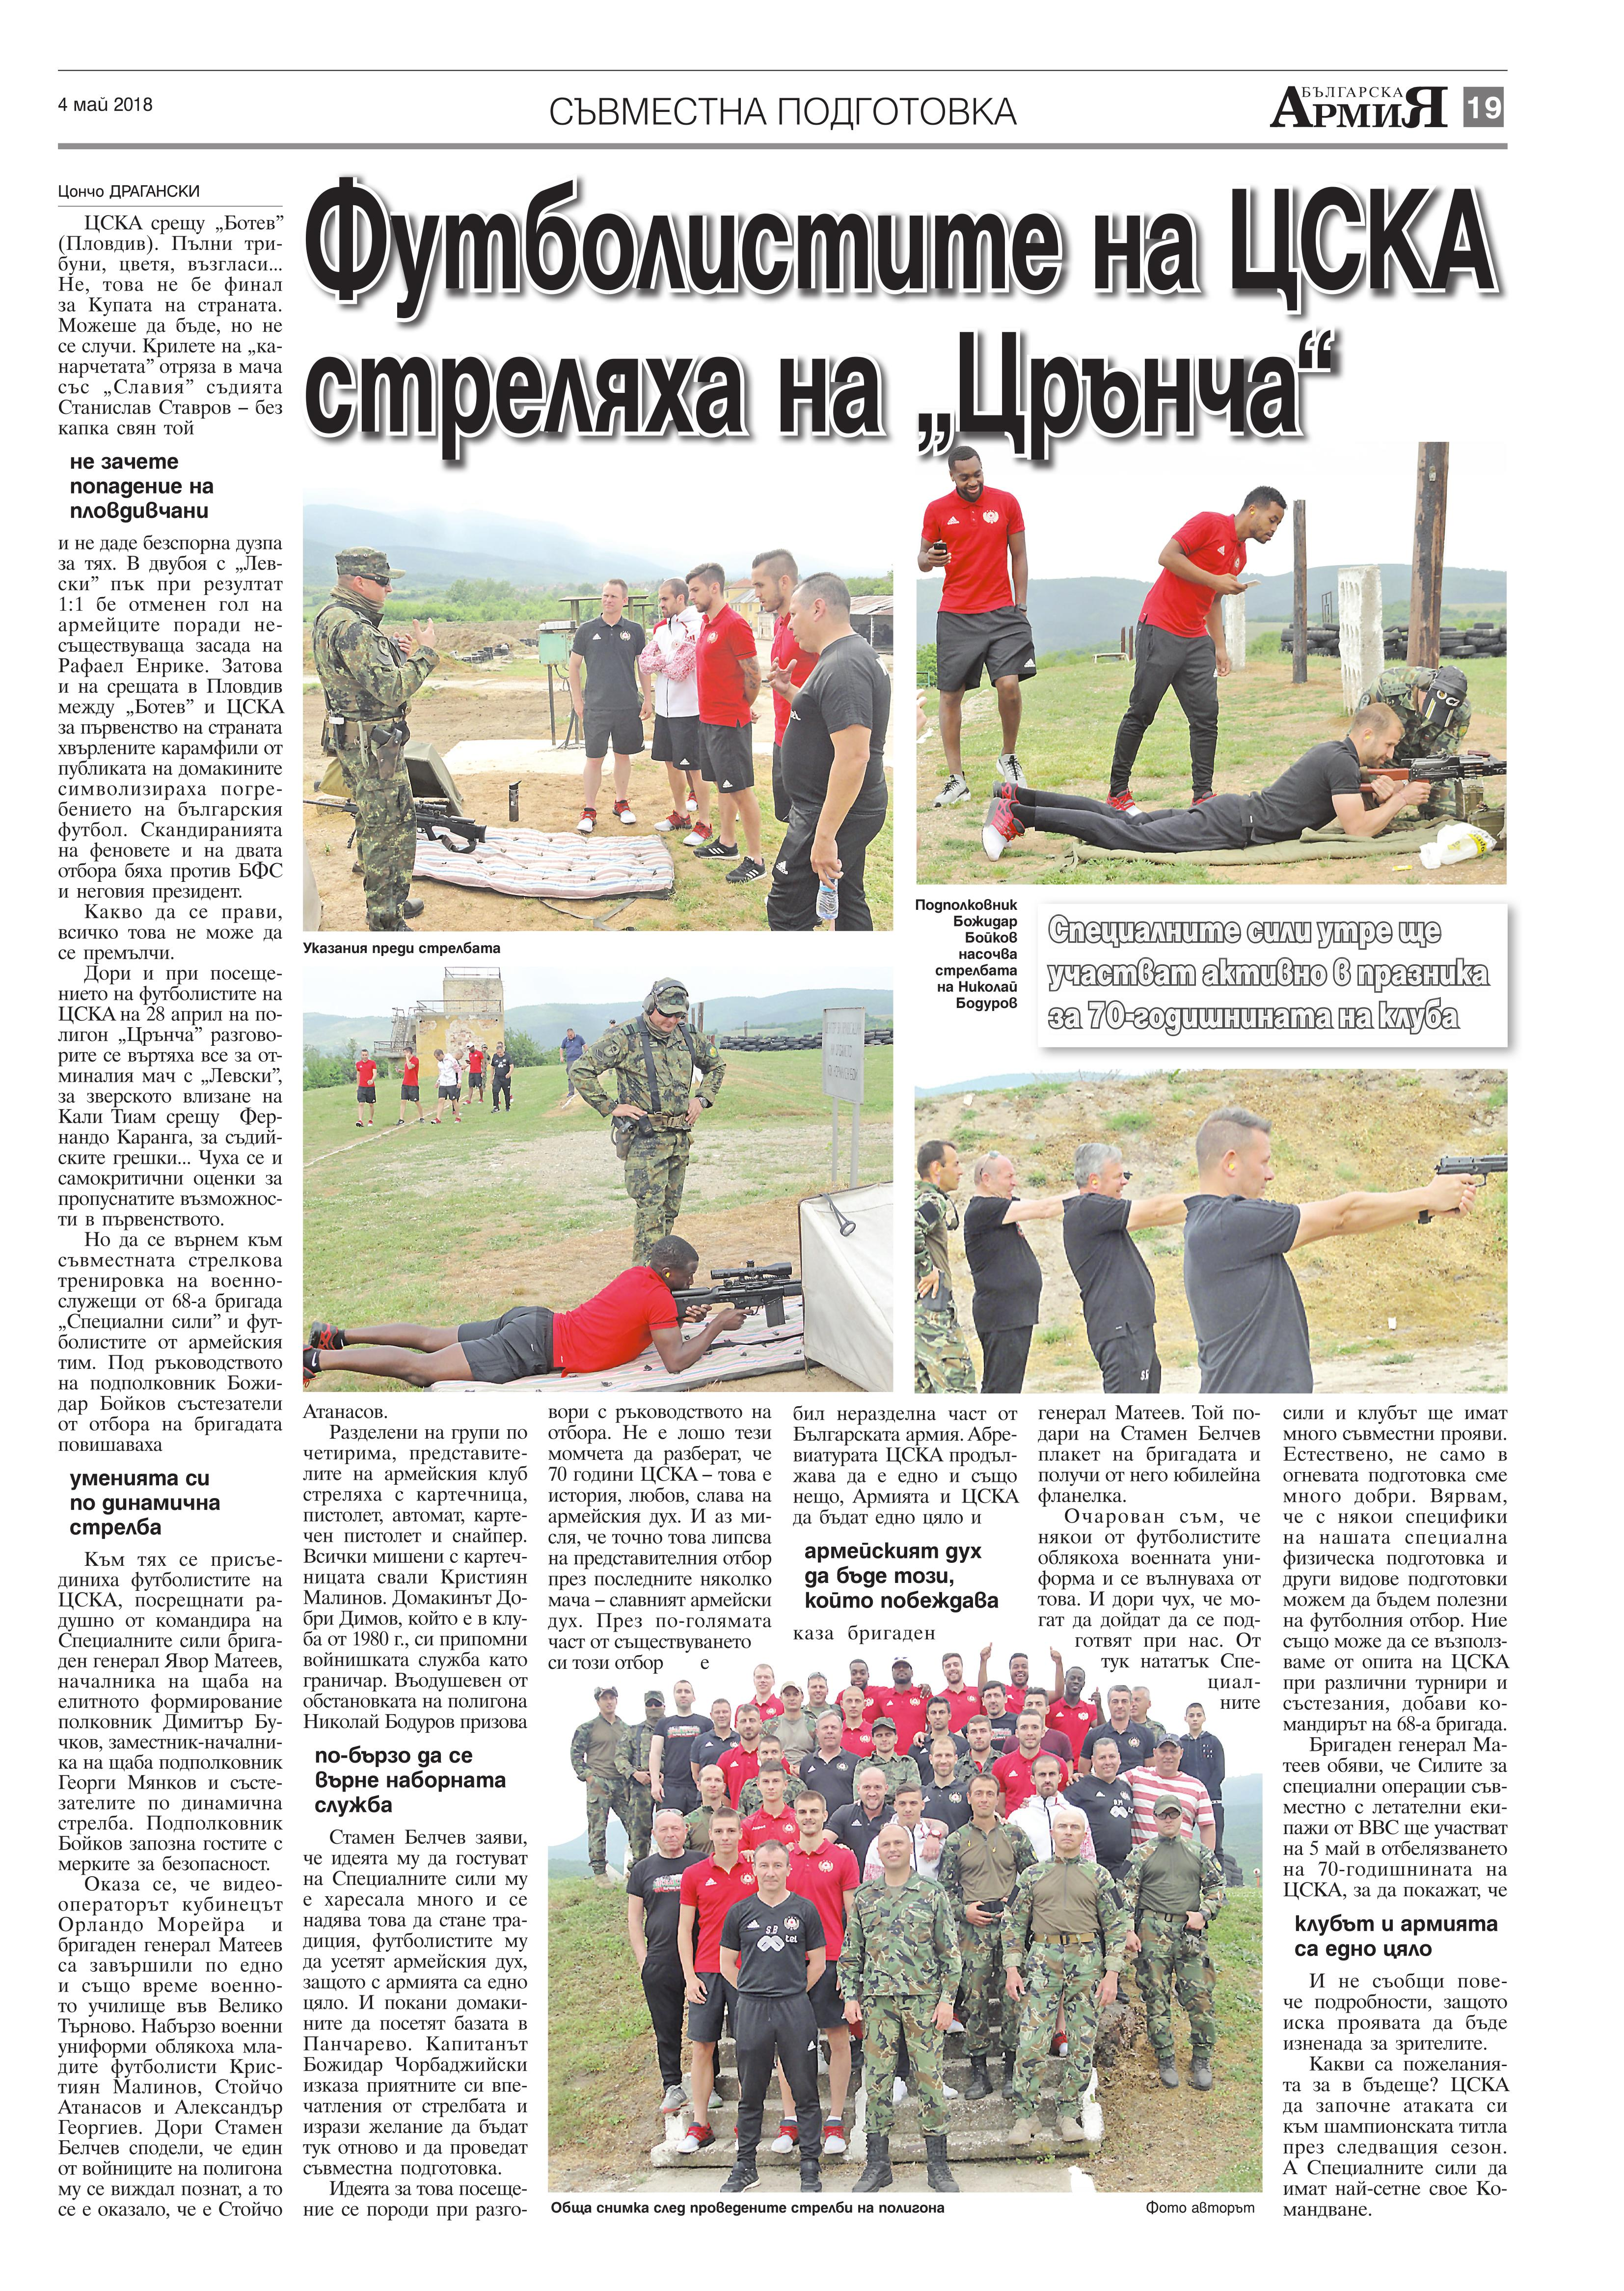 https://armymedia.bg/wp-content/uploads/2015/06/19.page1_-50.jpg